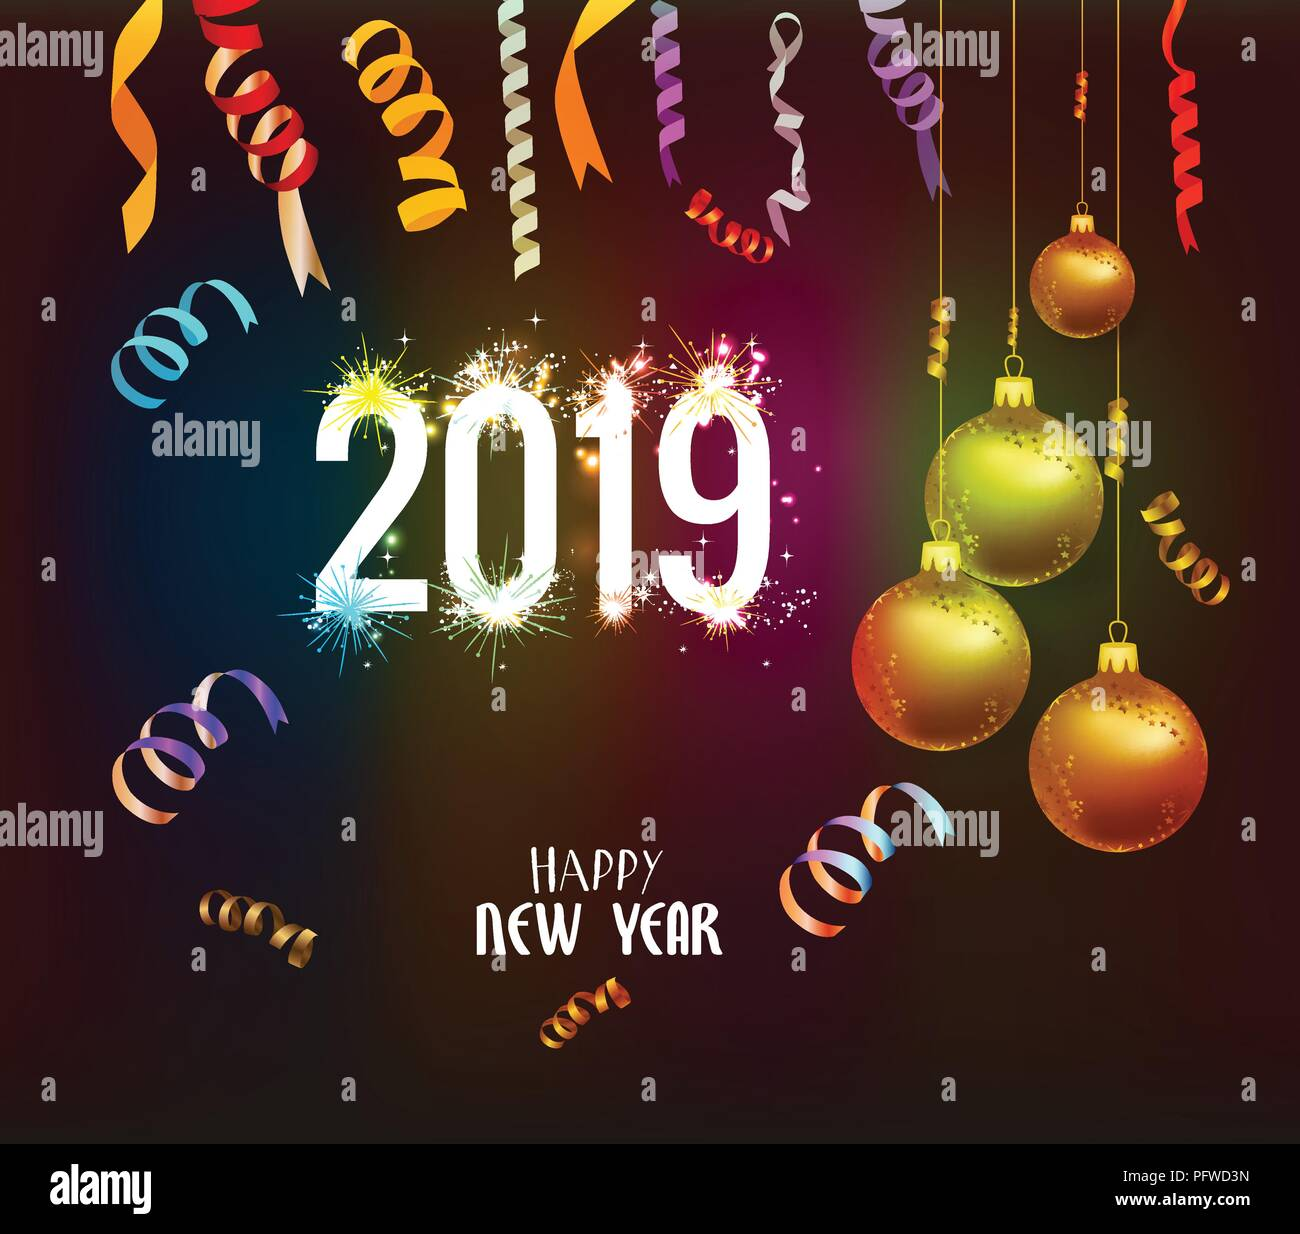 happy new year 2019 background with christmas confetti gold and black colors lace for text